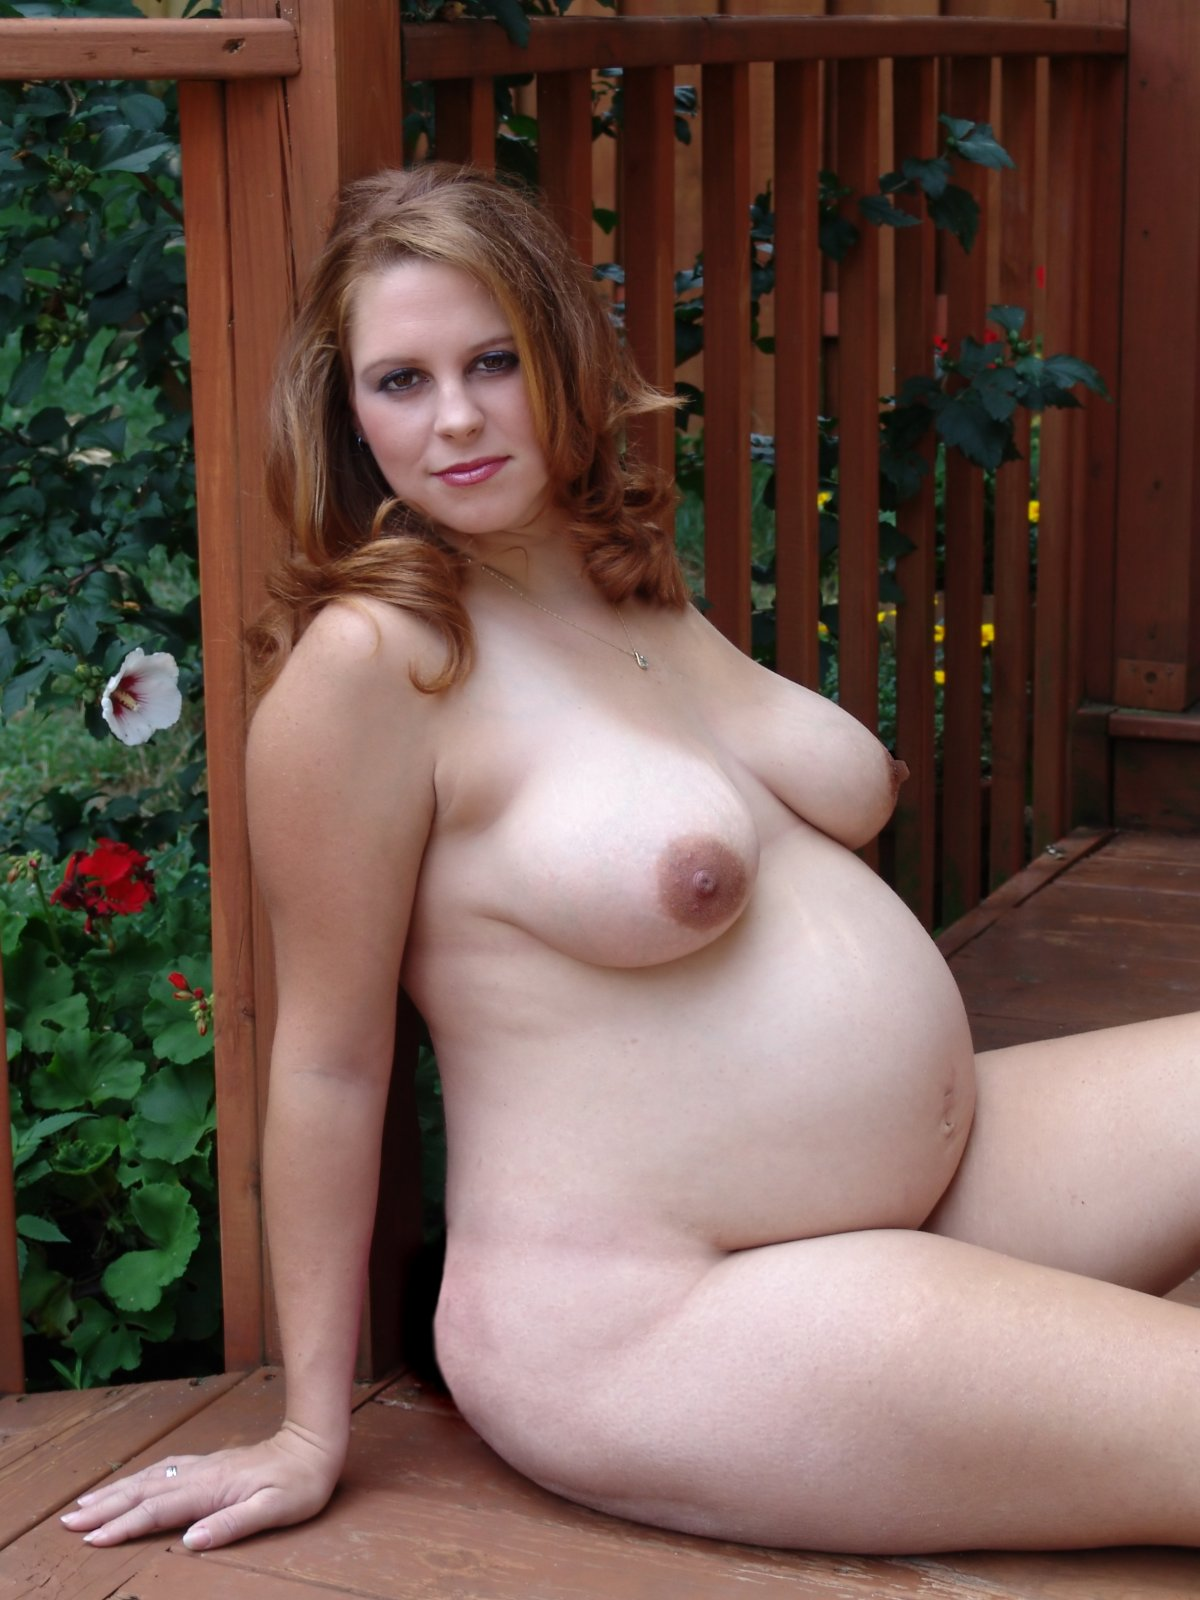 Hot pregnant woman nude